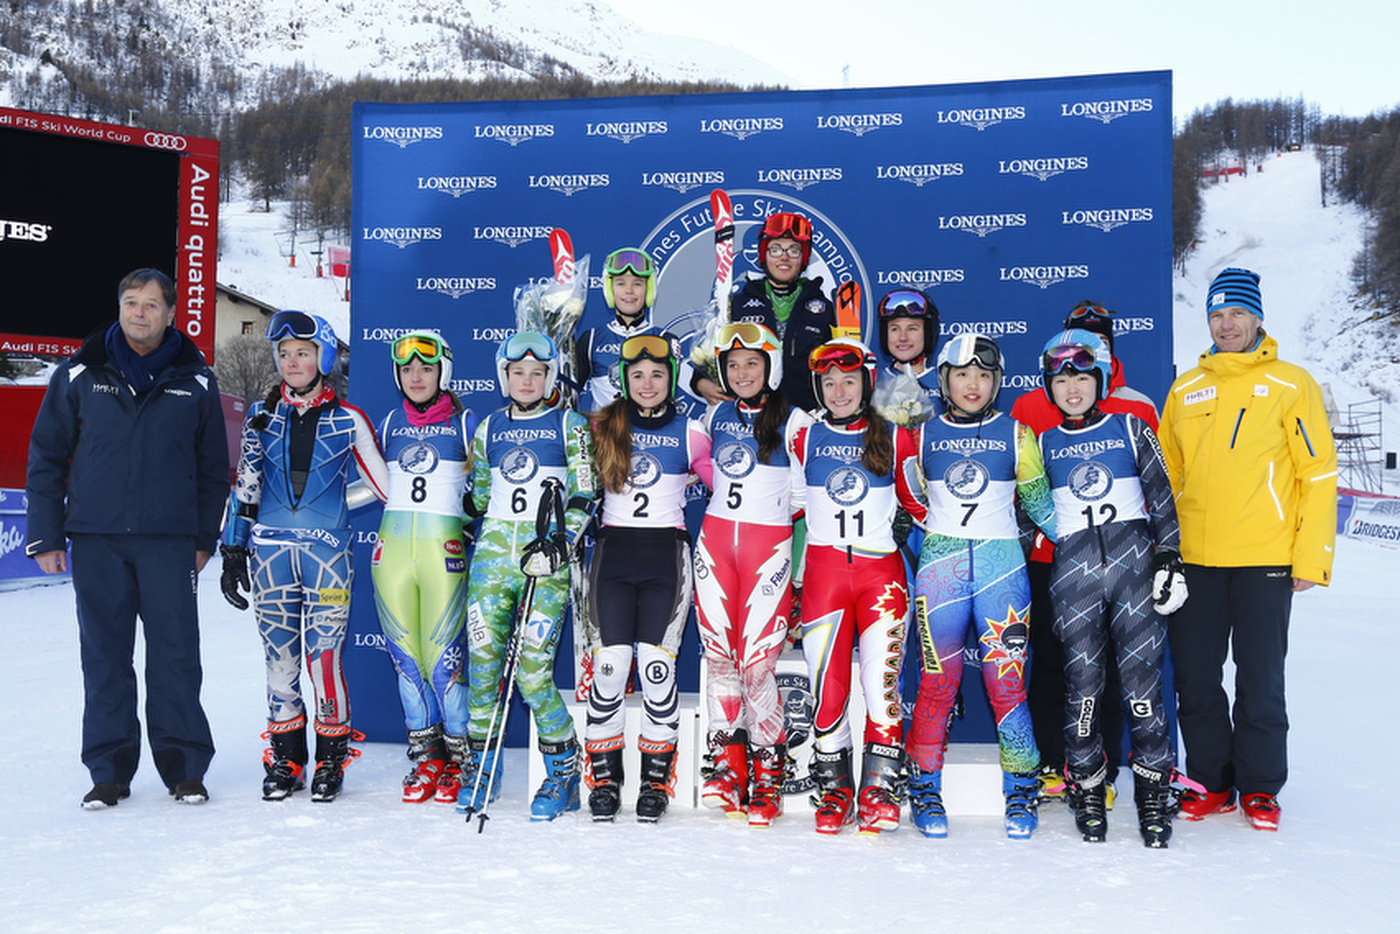 Longines Alpine Skiing Event: Second edition of the Longines Future Ski Champions – A successful 100% female competition in Val d'Isère 32